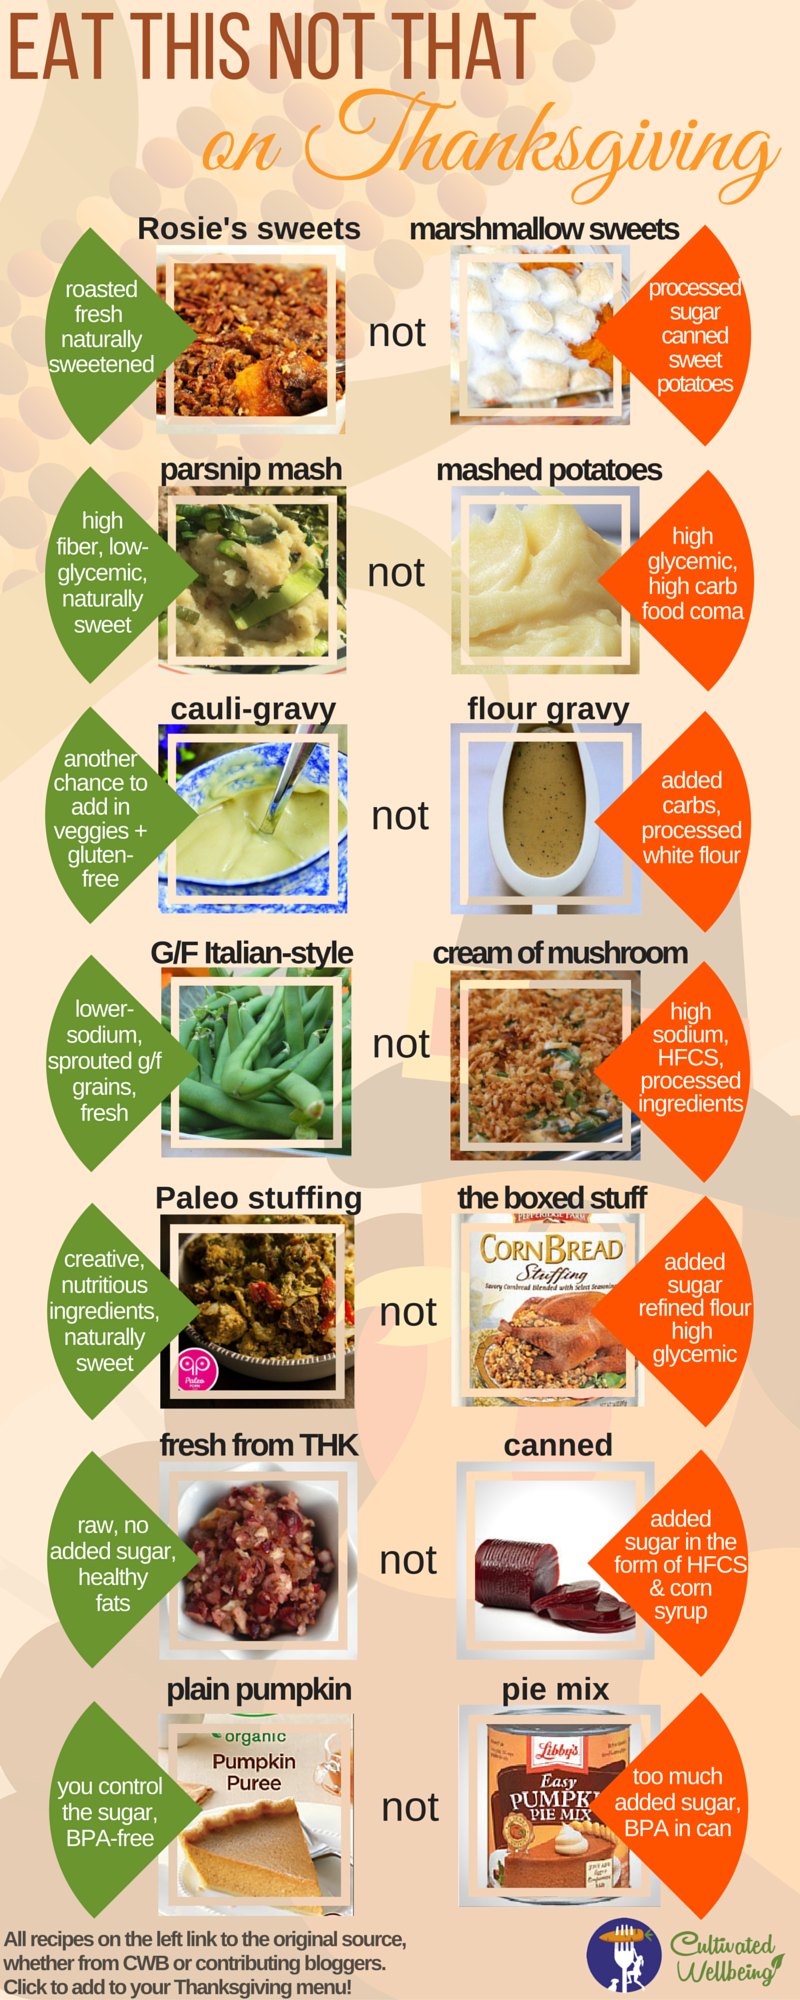 Eat This, Not That: Foods with Added Sugar